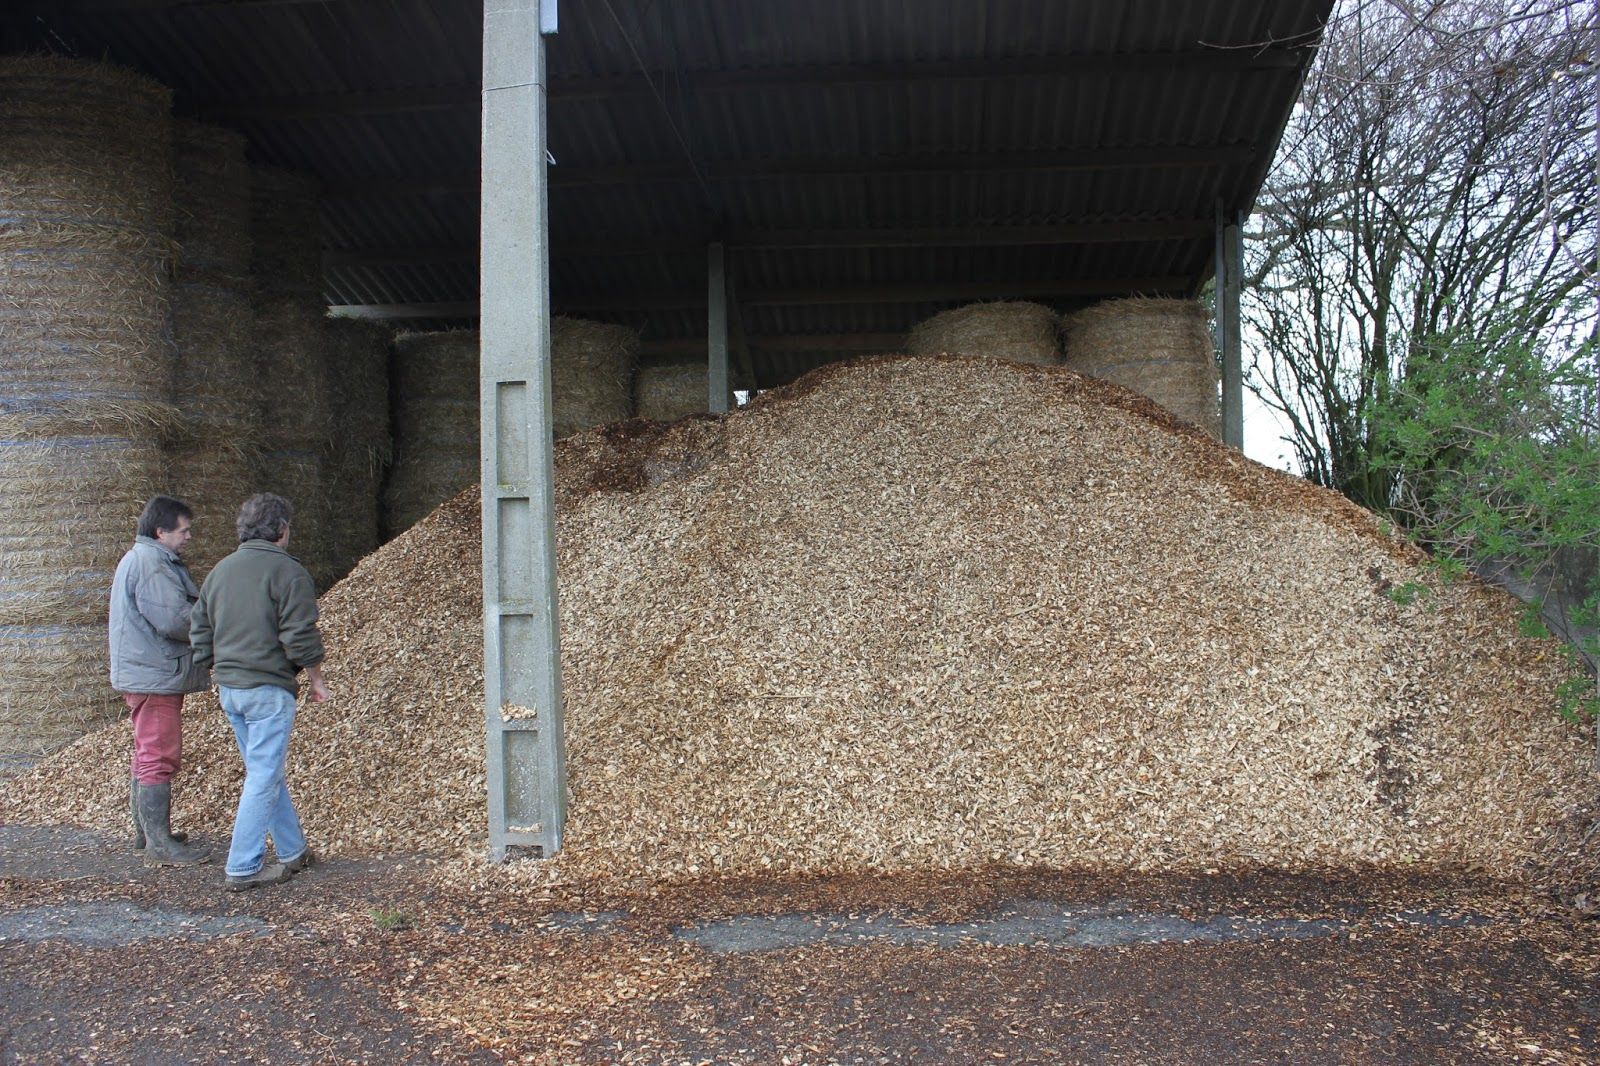 Chips drying prior to use in wood chip boiler